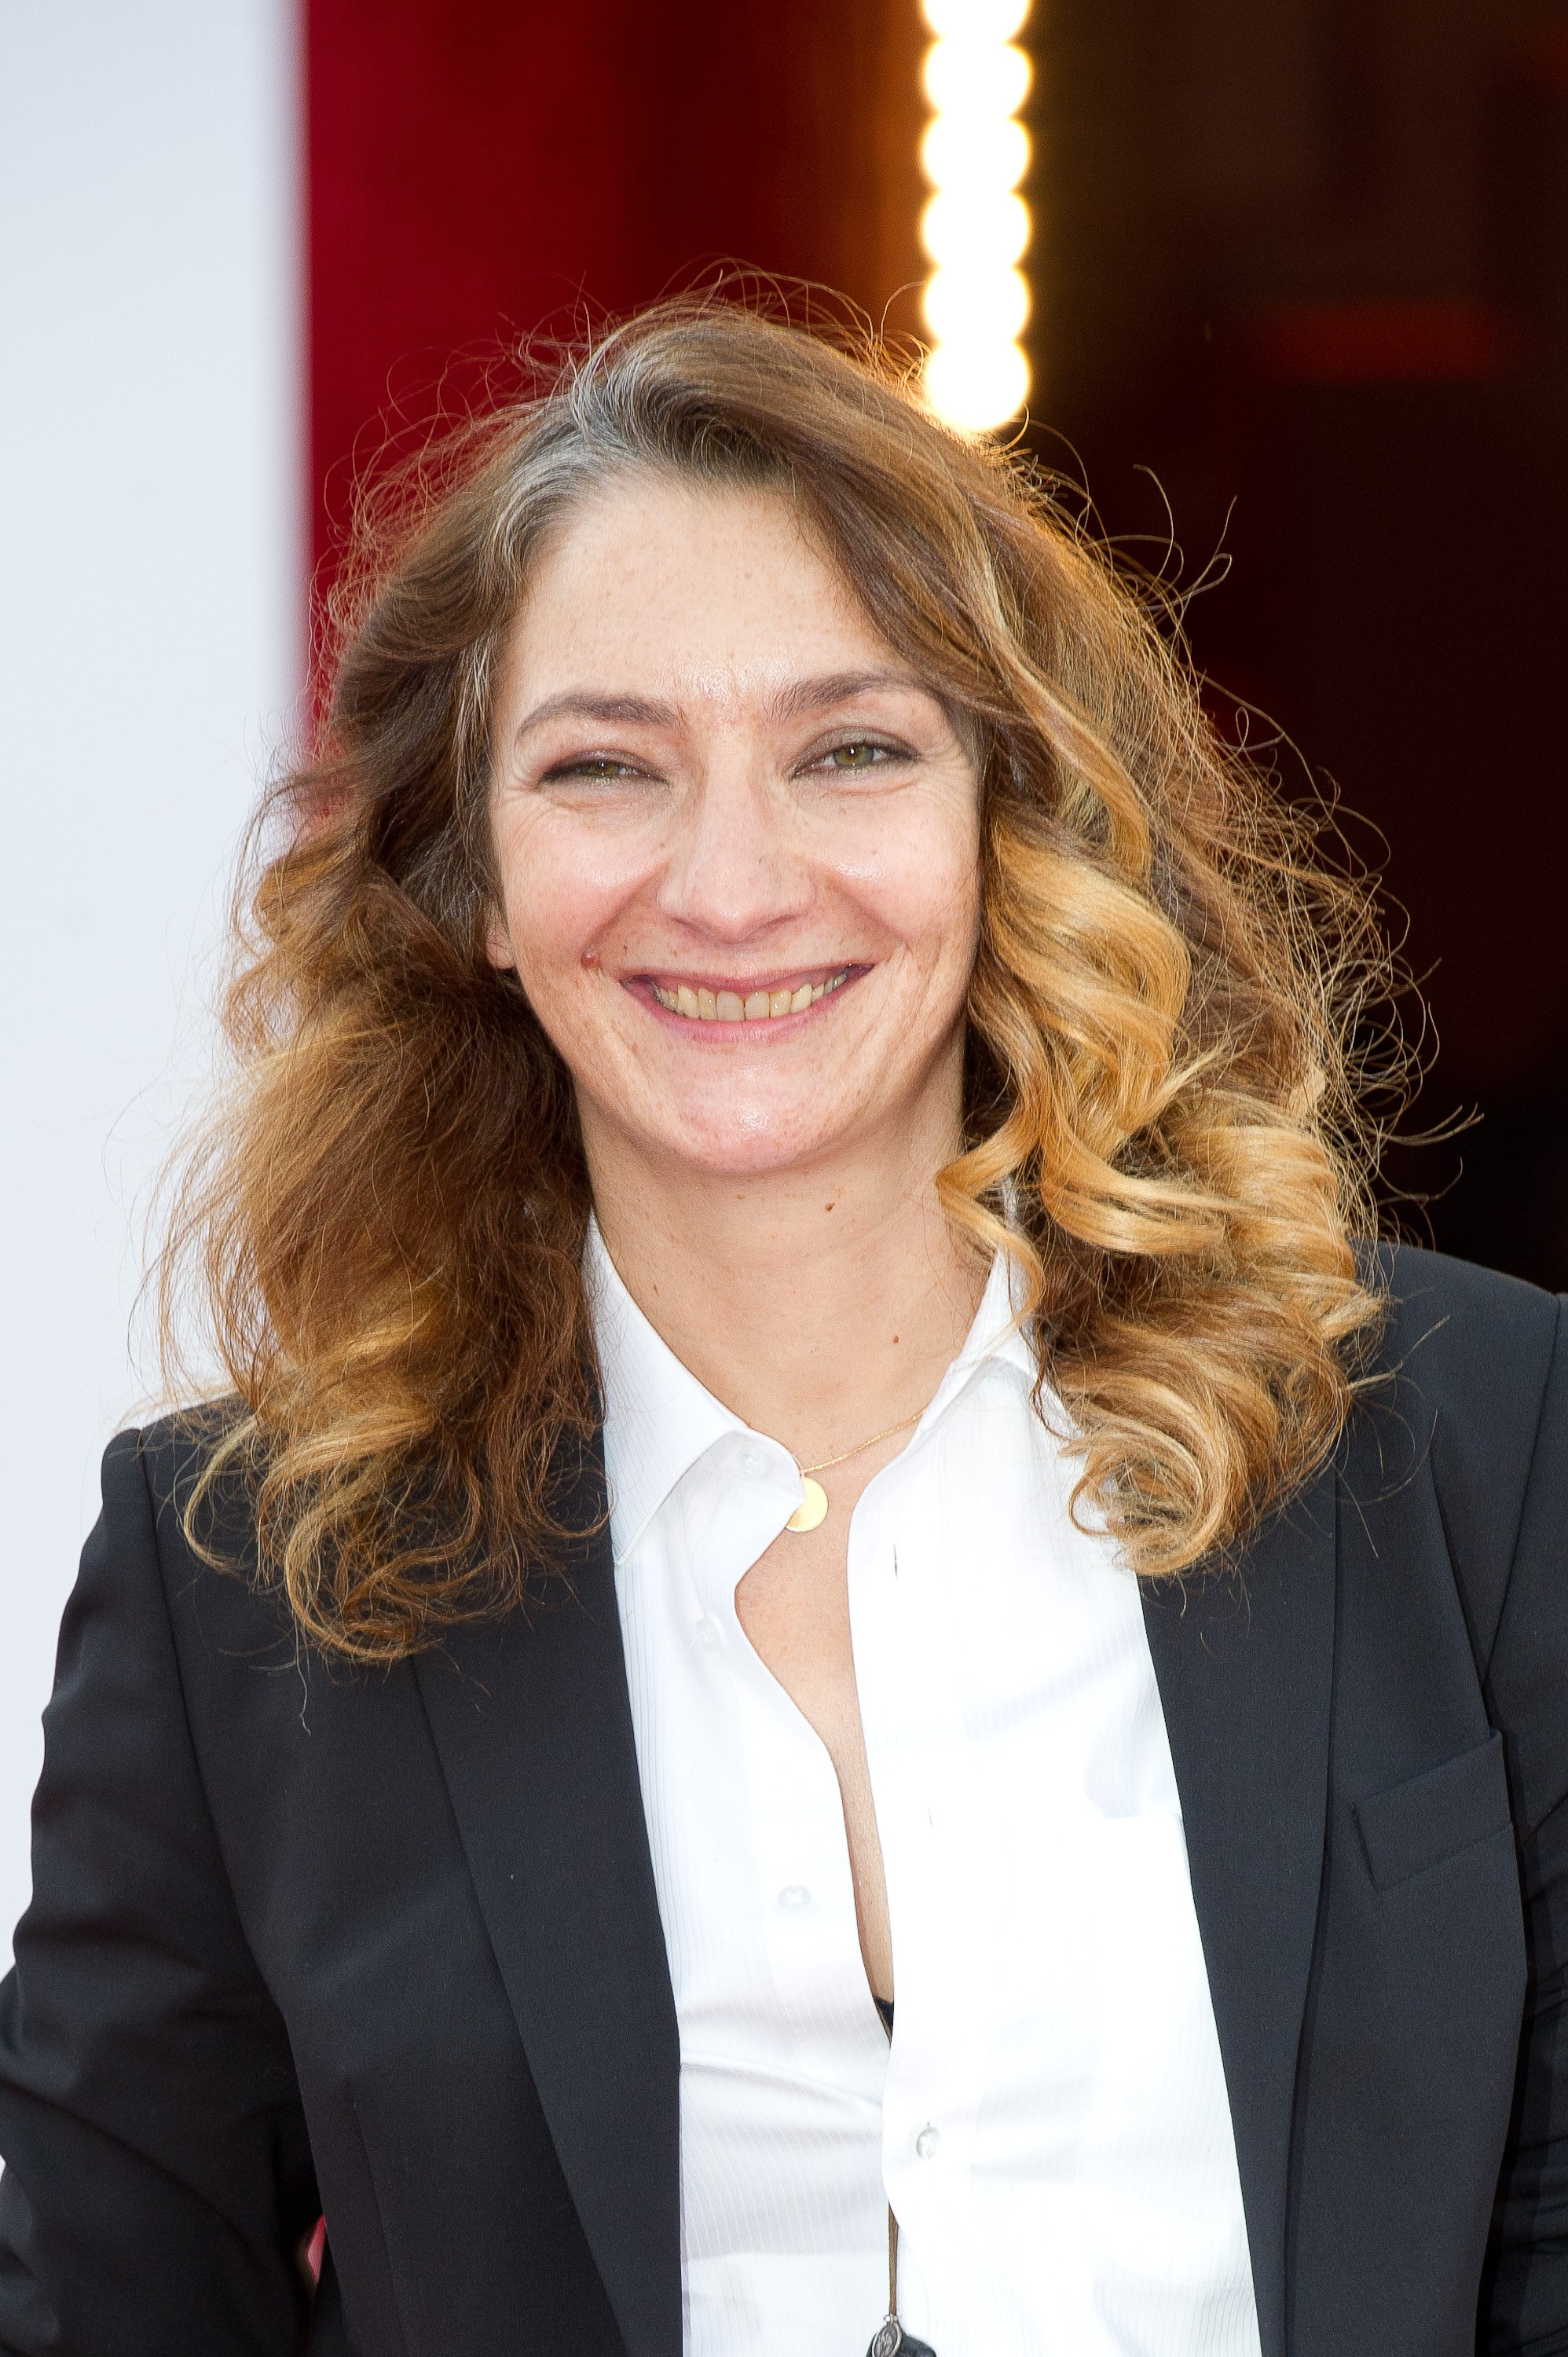 L'actrice Corinne Masiero   photo : Getty Images